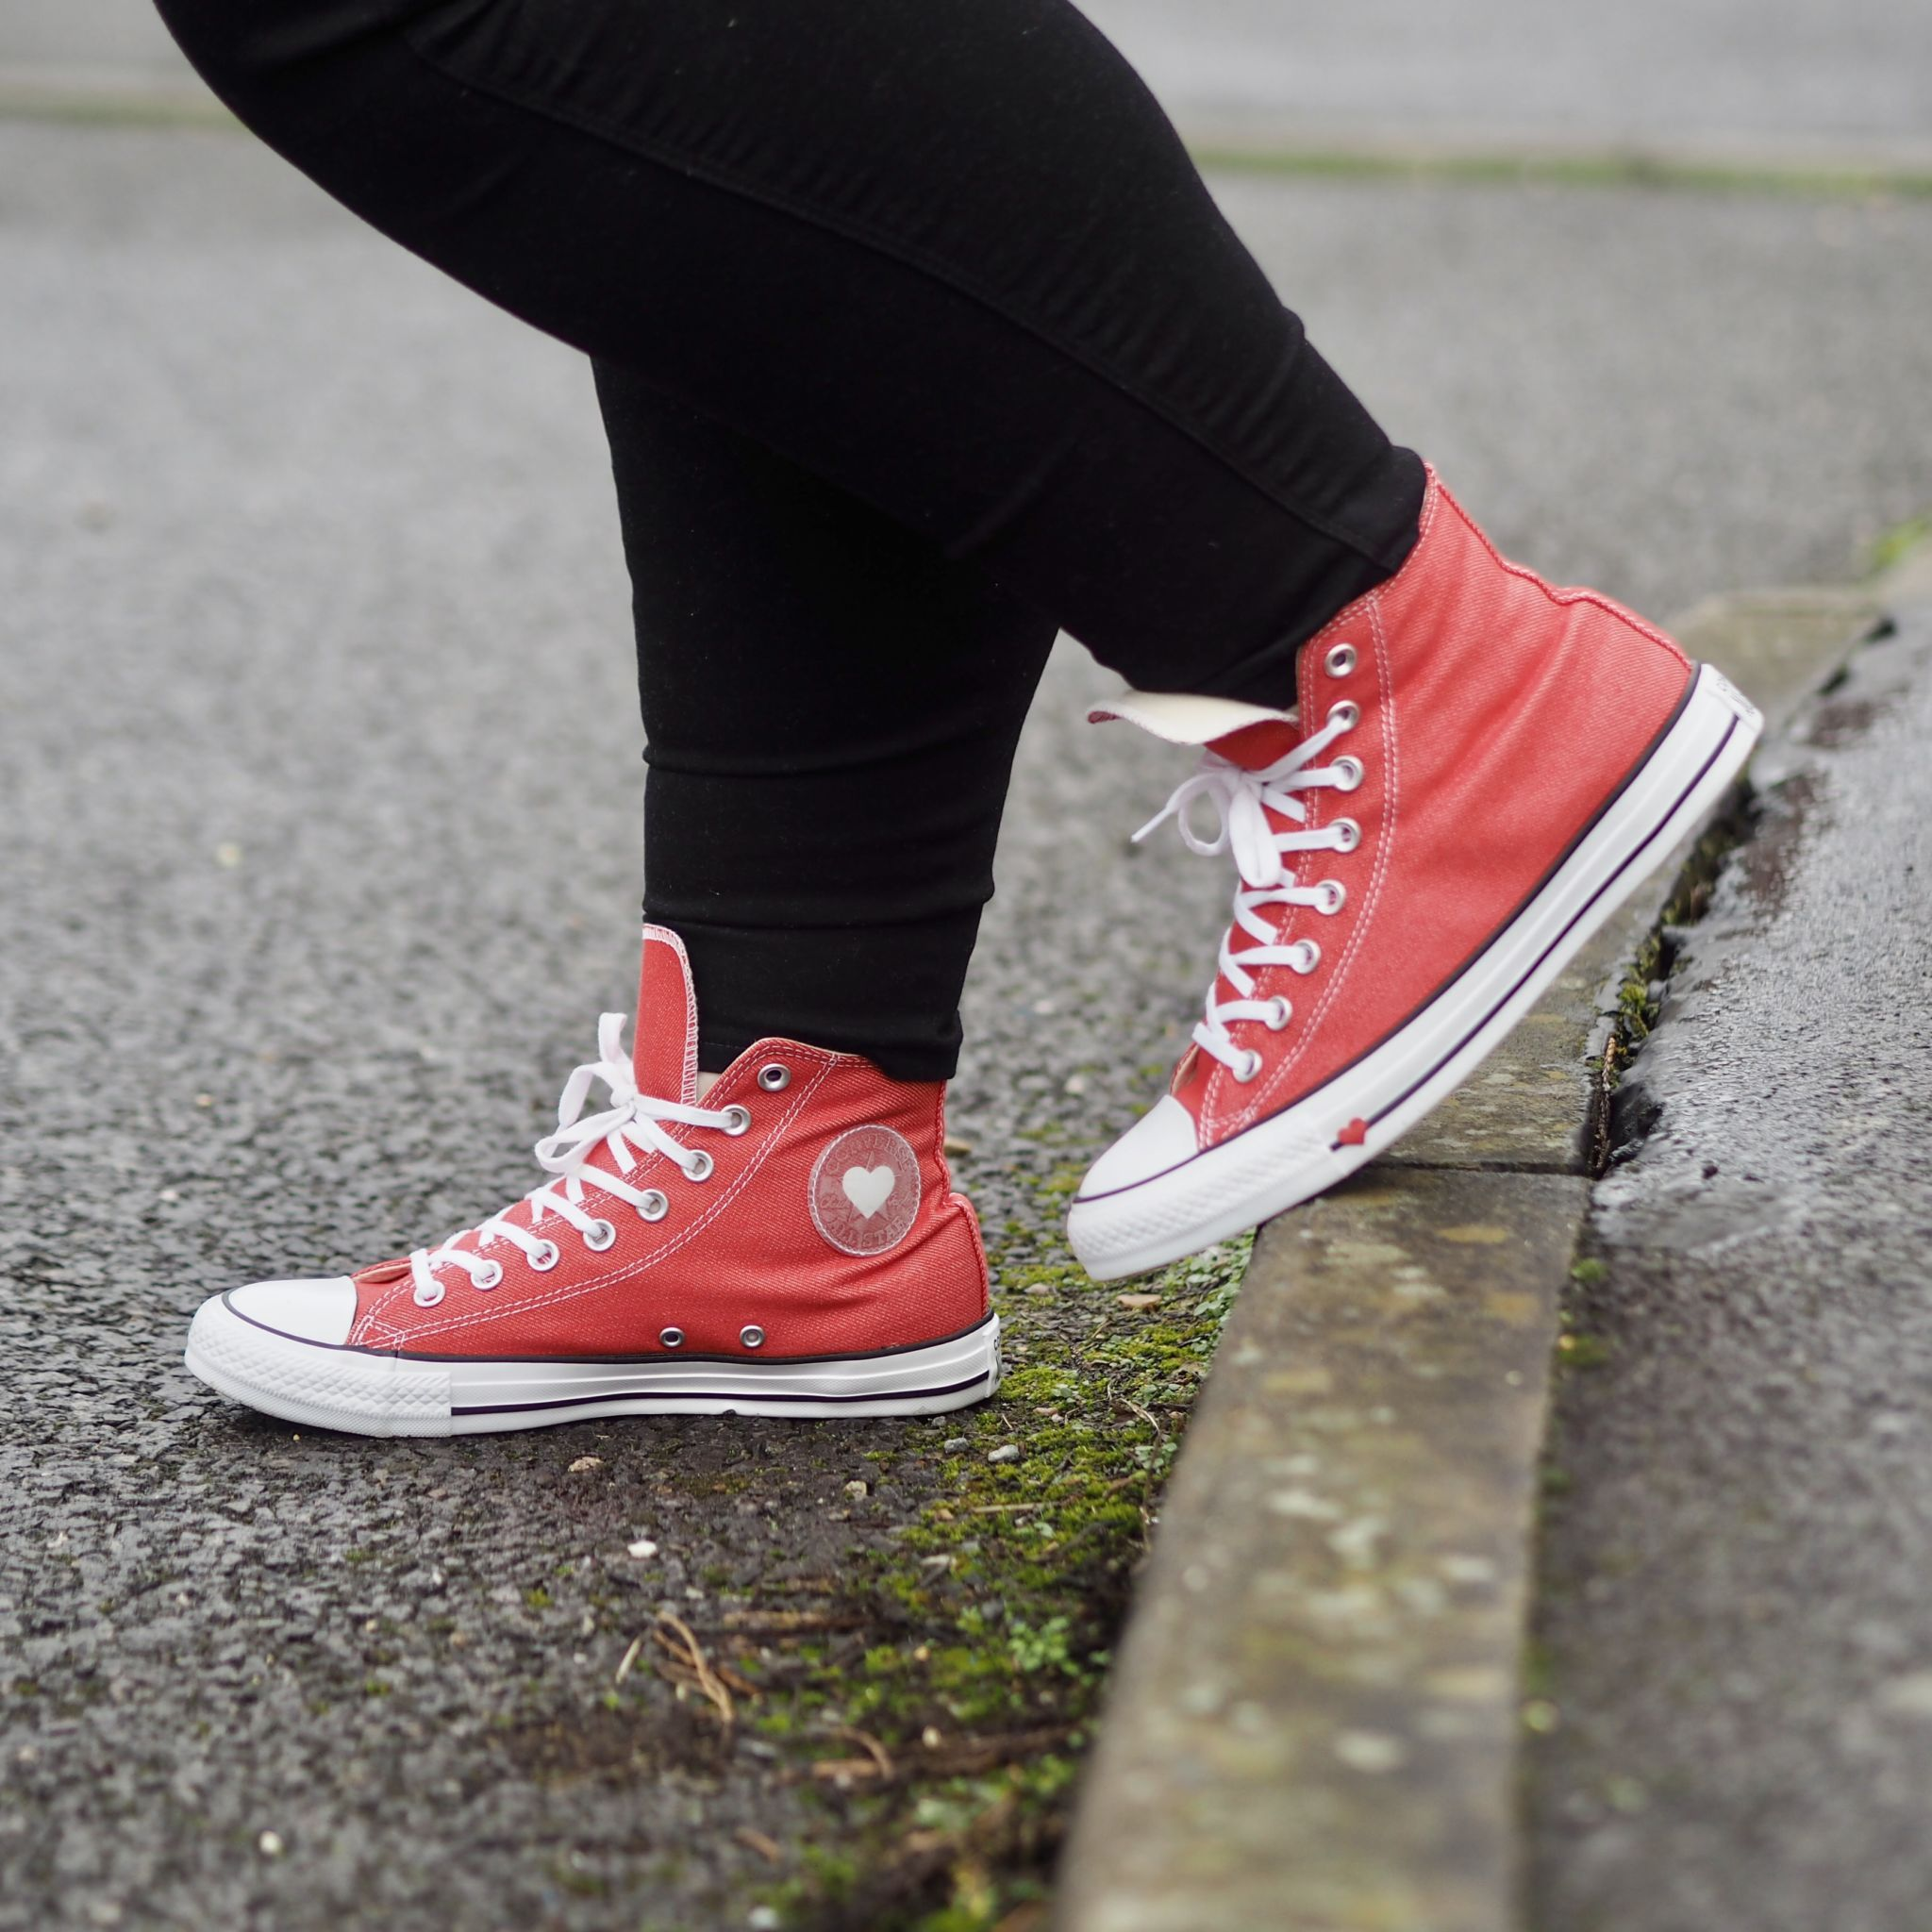 How to wear red converse